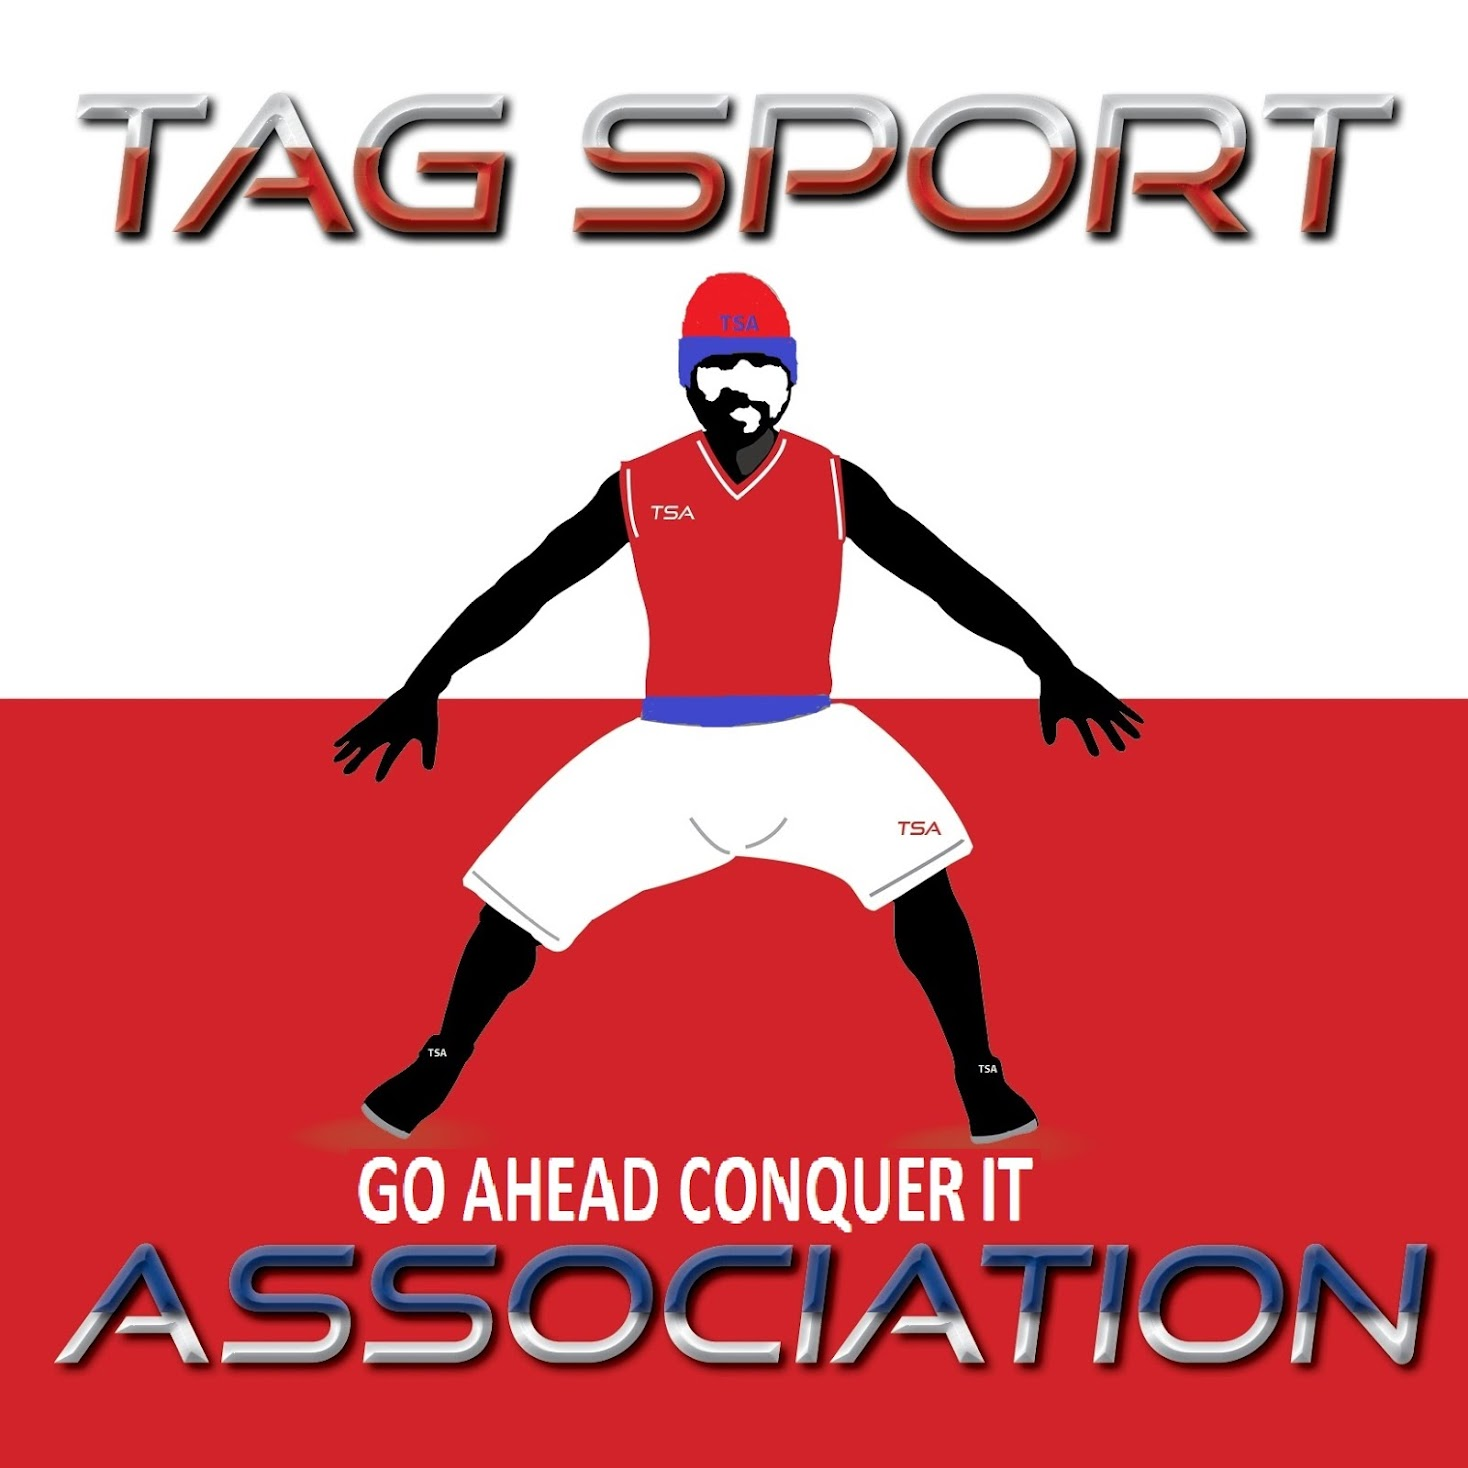 TAG SPORT ASSOCIATION GO AHEAD AND CONQUER IT